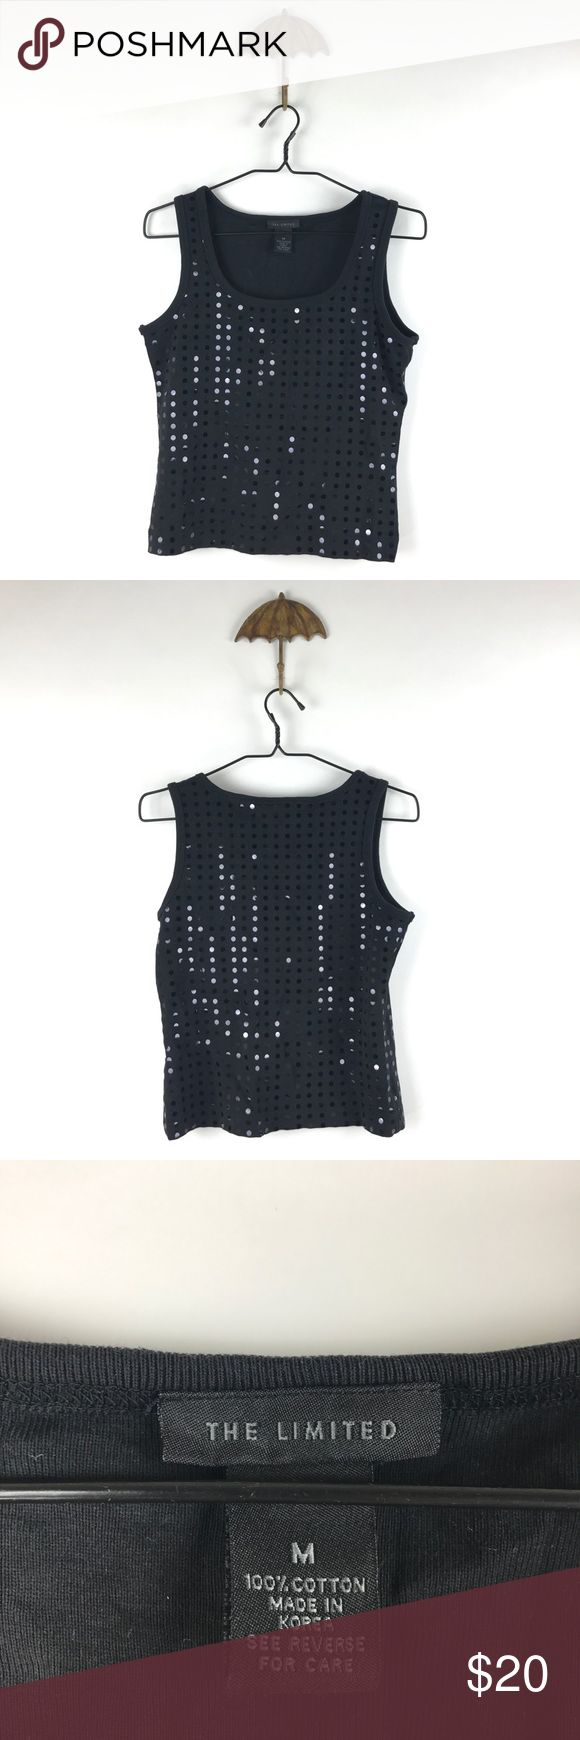 "The Limited polka dot Cropped tank Sz M 548 The Limited Cropped Polka Dot Wide Strap Tank Black Women's Size Medium  Measurements: Bust:   16"" Flat Across has some stretch Length:  20"" Long  In good preowned condition with no known flaws and light overall wear. The Limited Tops Tank Tops"